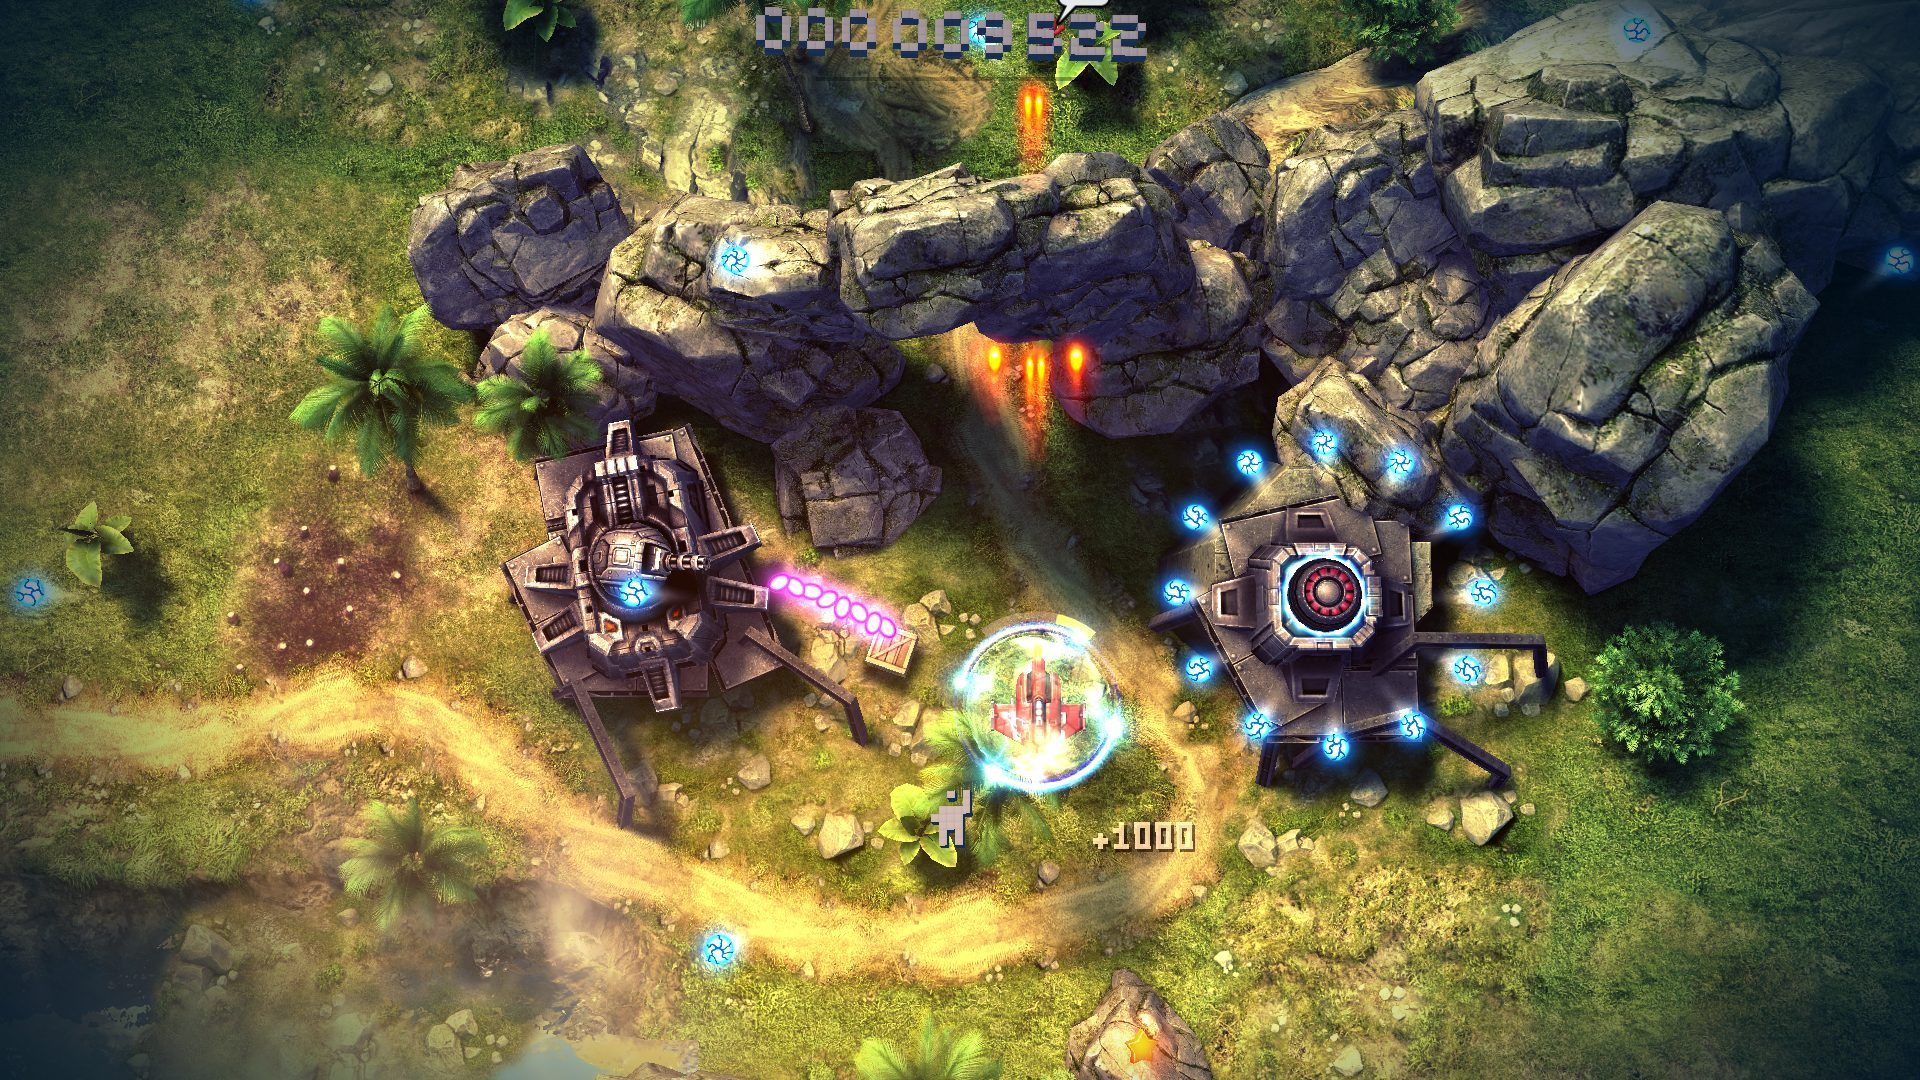 Sky Force Anniversary Now Available on PS4, PS3 and Vita